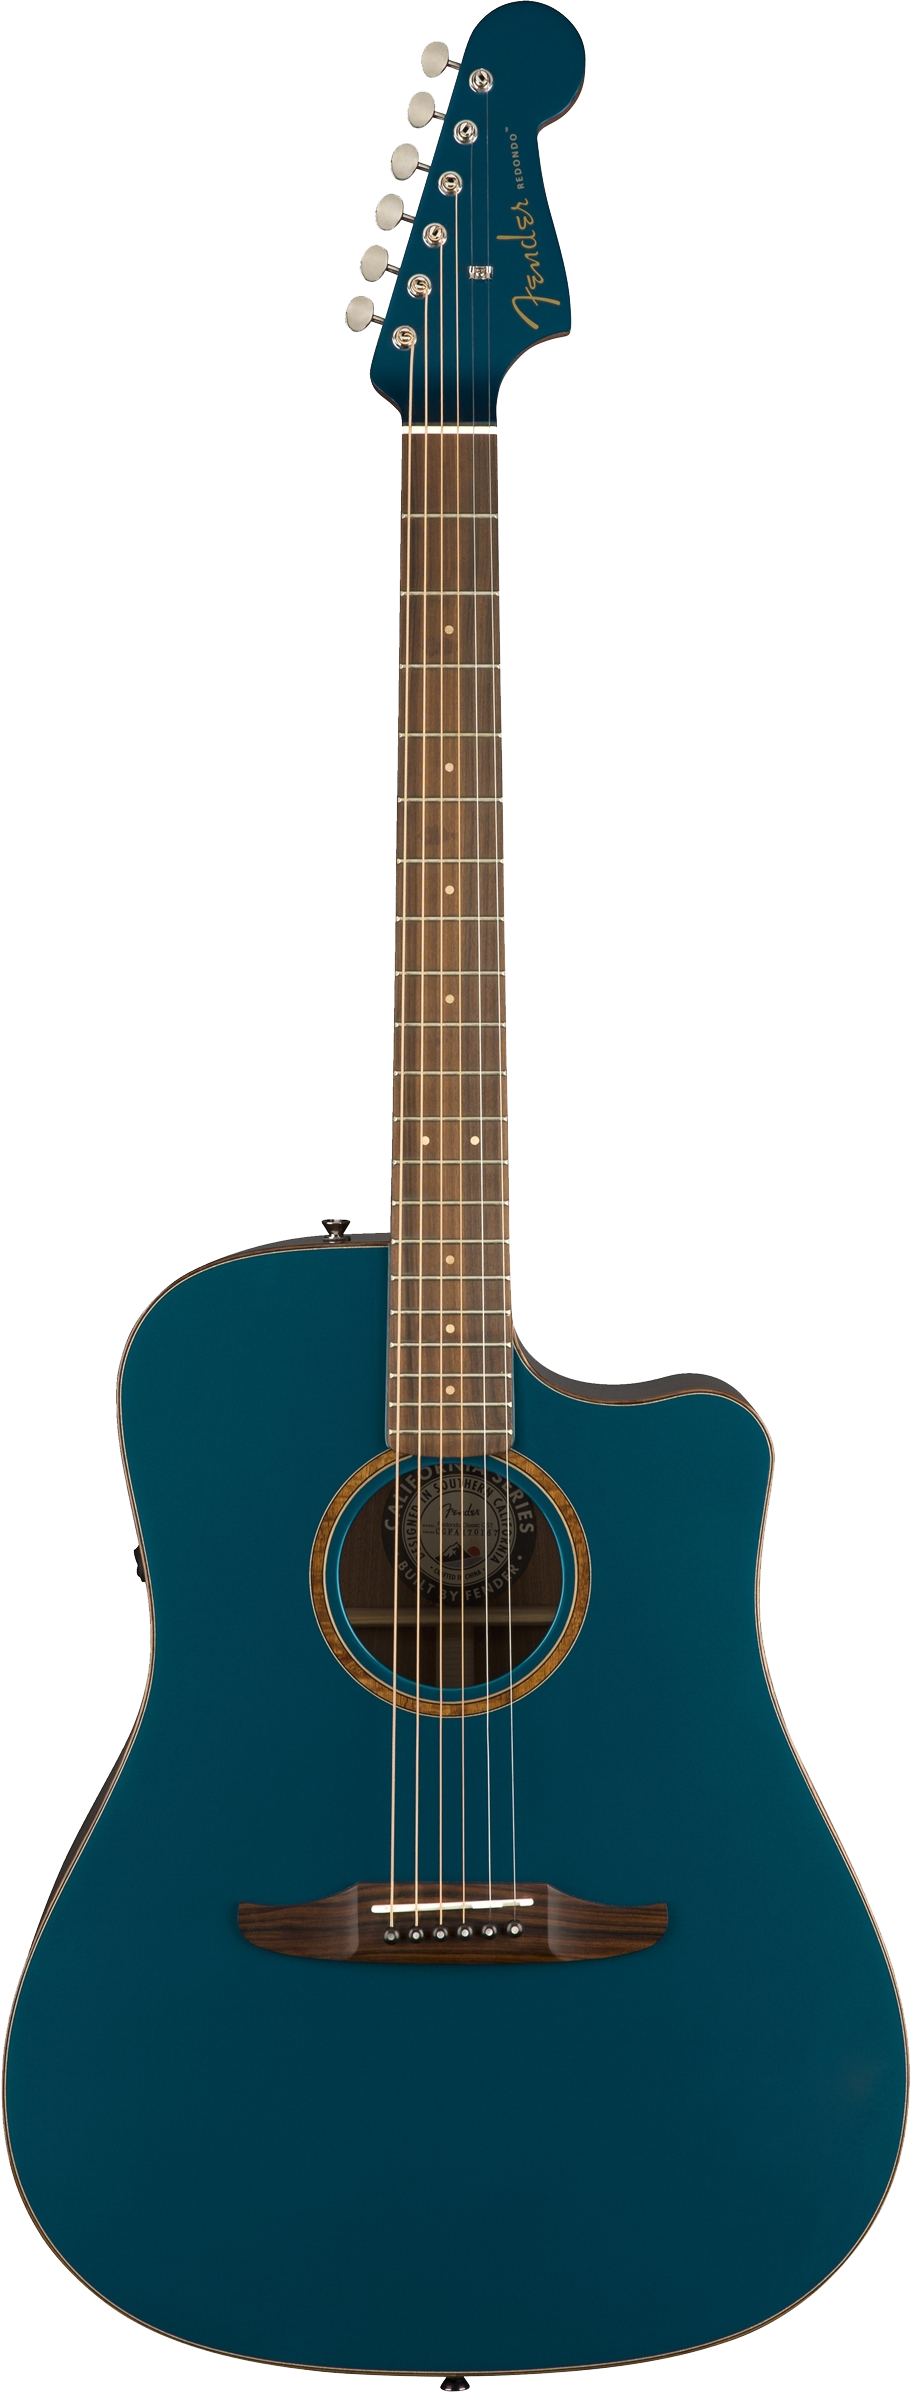 Fender Redondo Classic Acoustic / Electric Guitar - Cosmic Turquoise